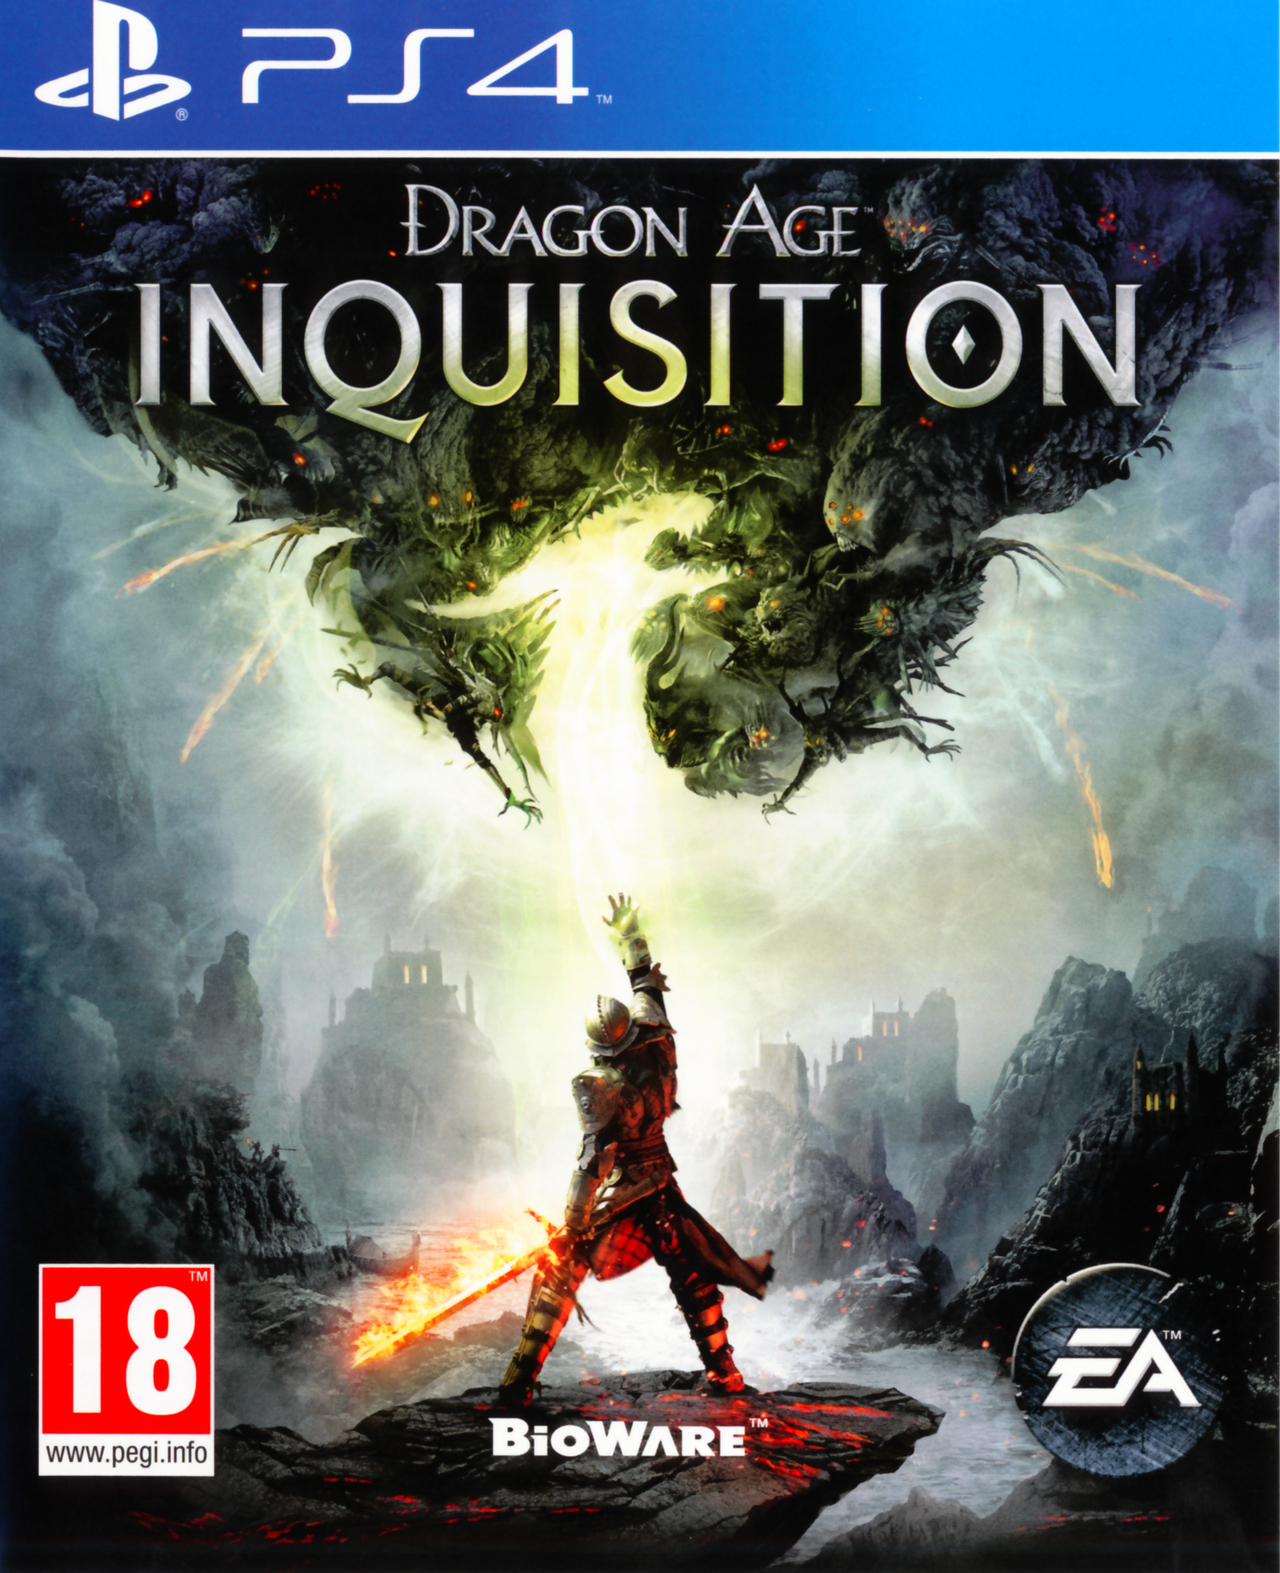 http://image.jeuxvideo.com/images/jaquettes/00049198/jaquette-dragon-age-inquisition-playstation-4-ps4-cover-avant-g-1416589242.jpg